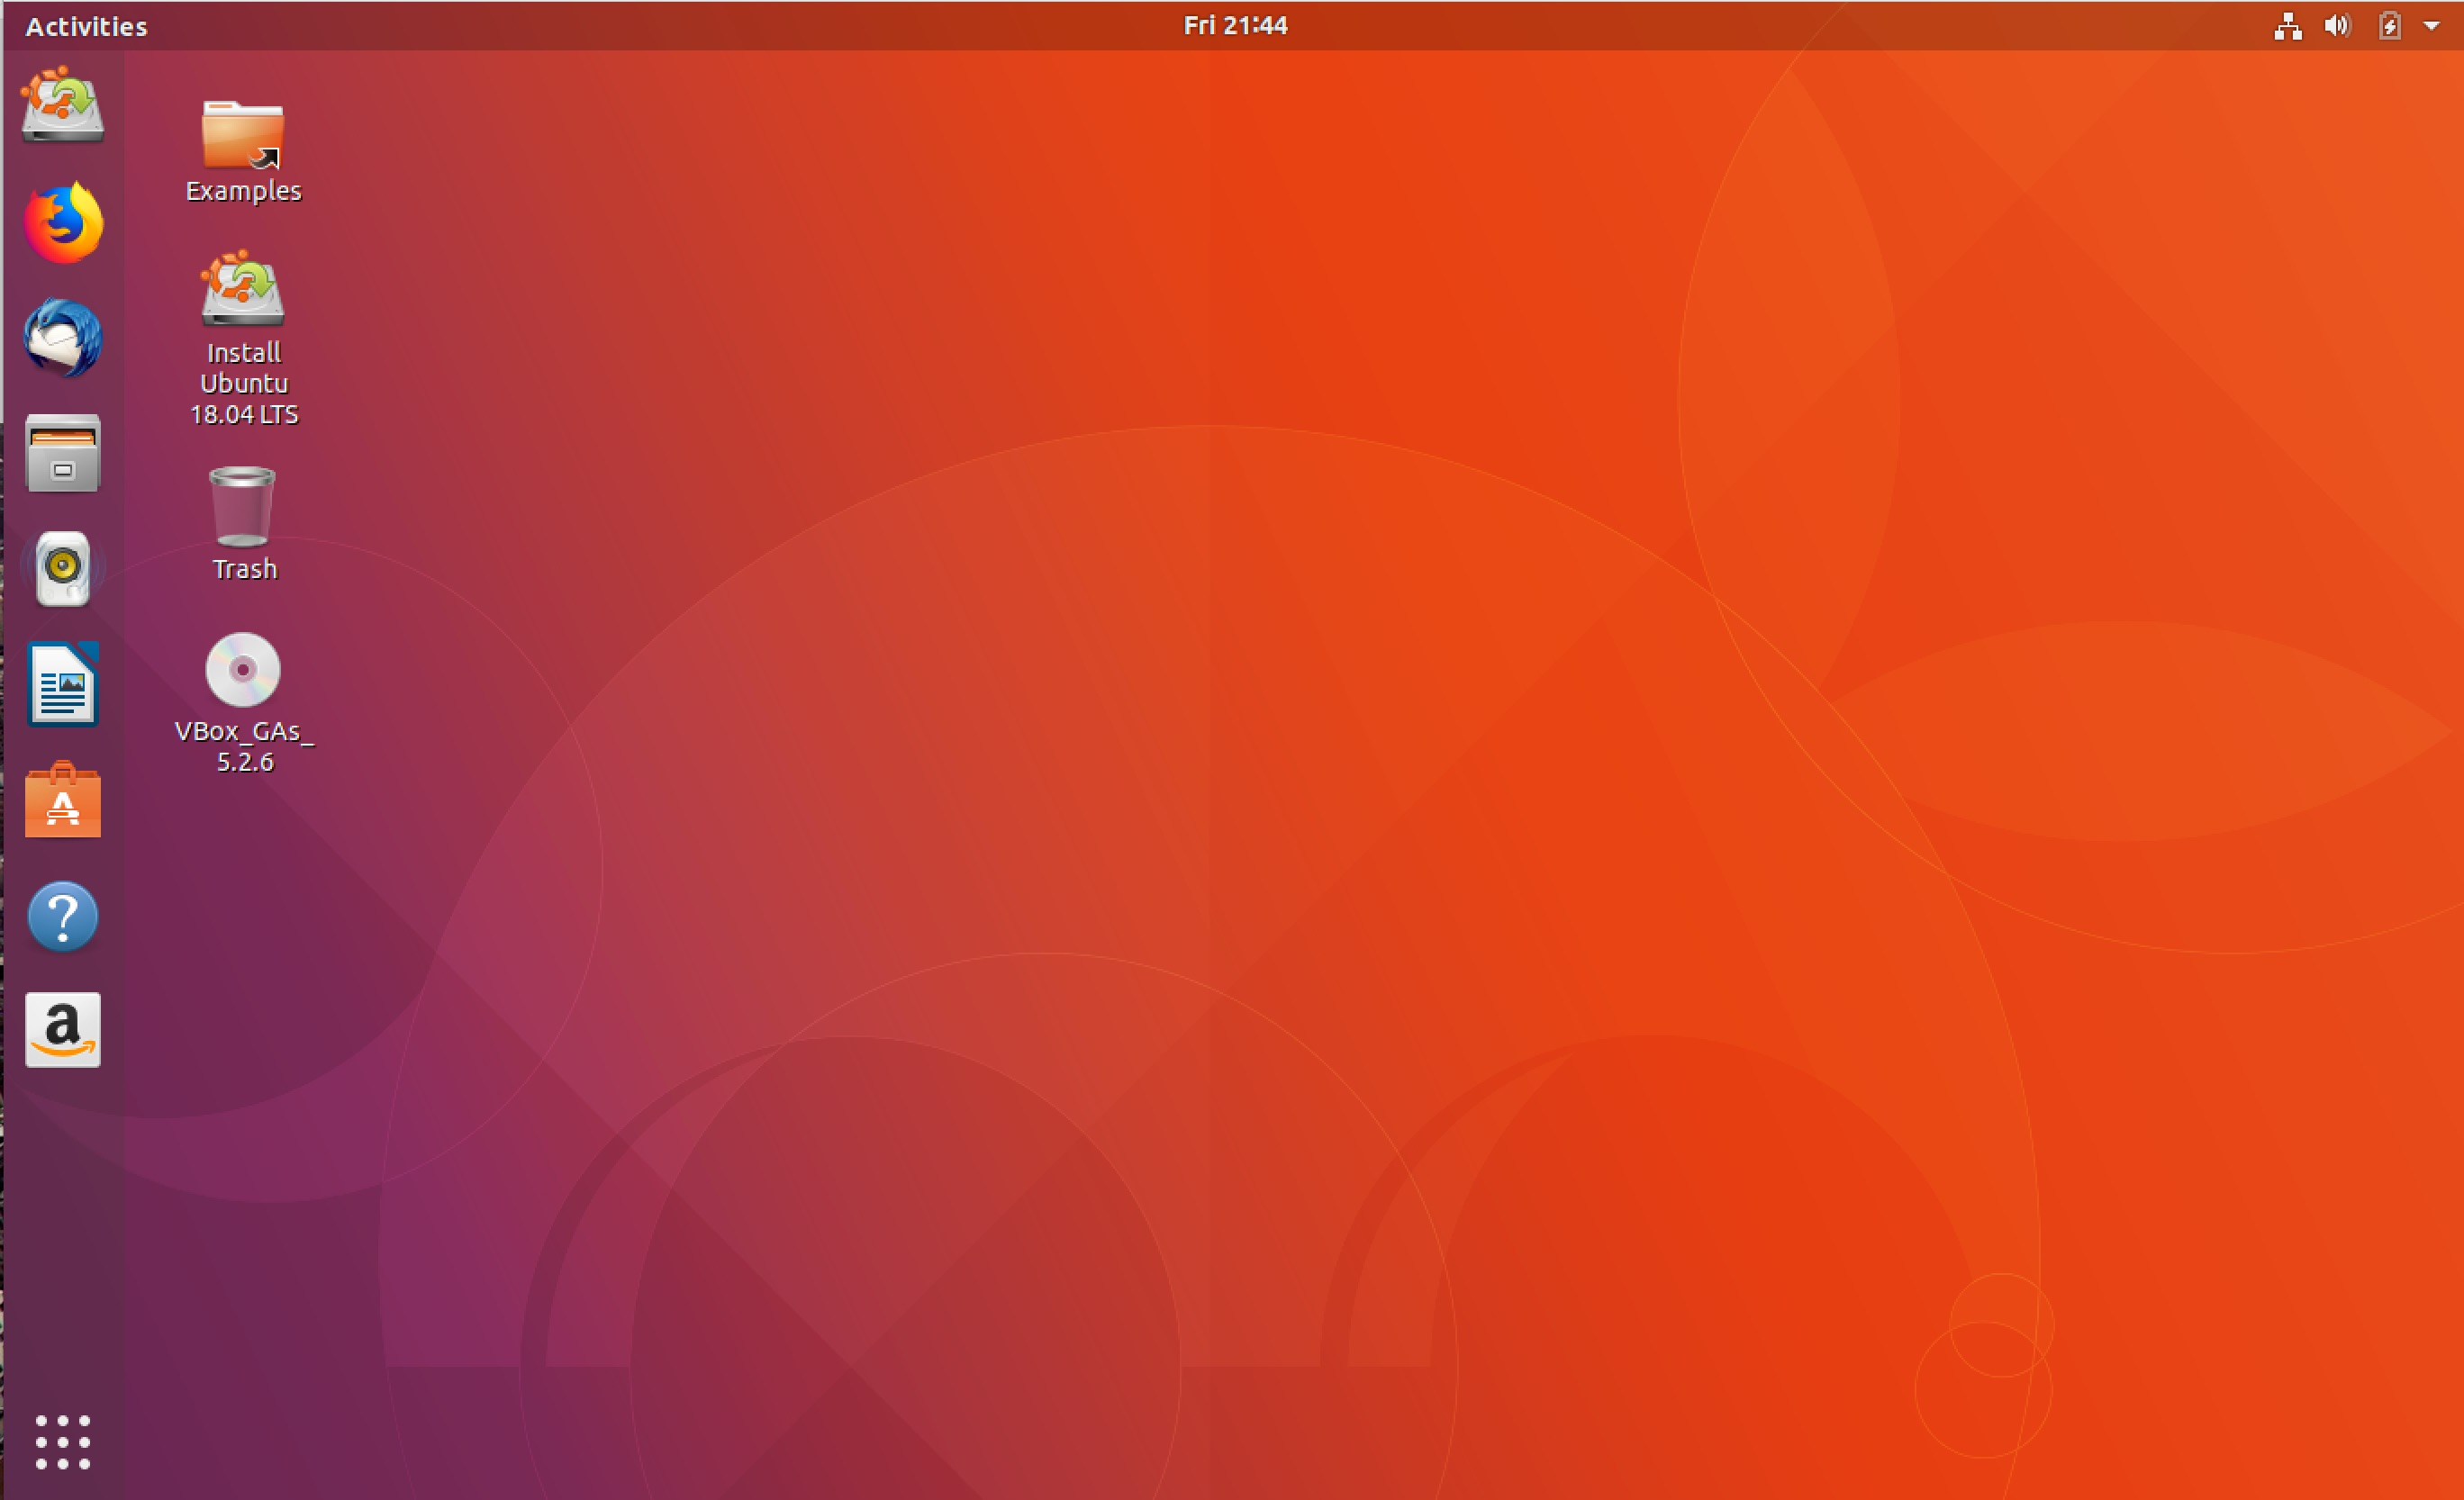 Canonical Invites Ubuntu Linux Users to Test Video Playback